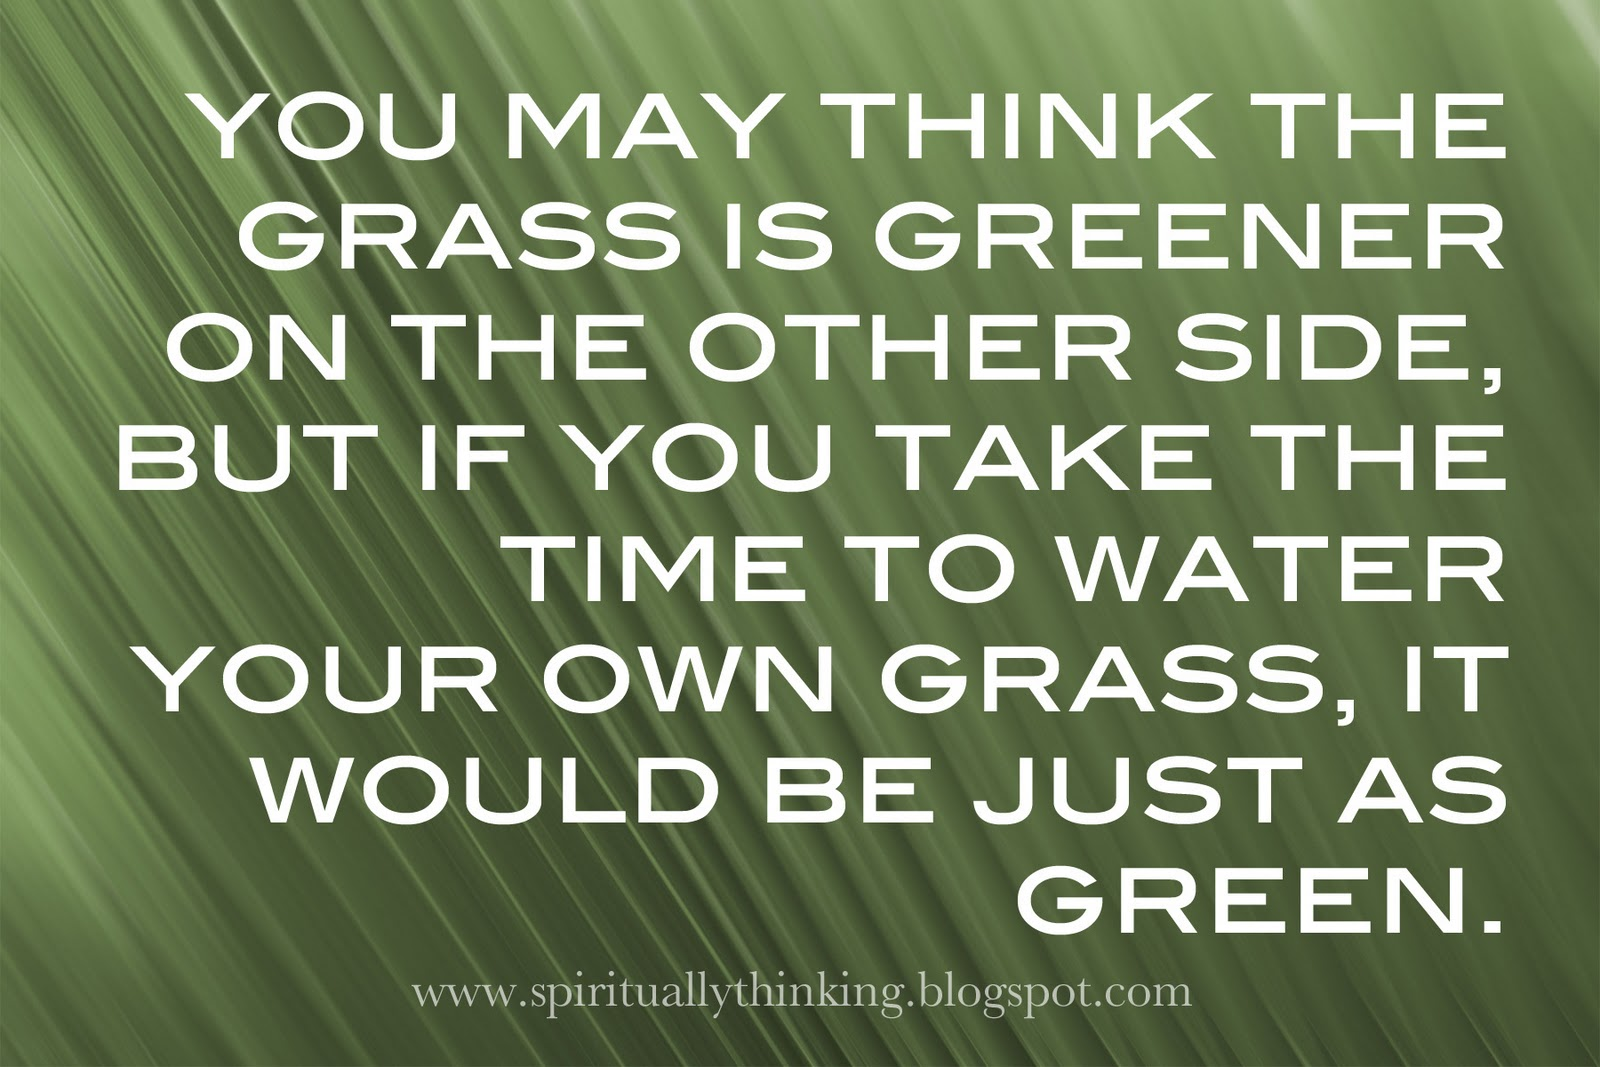 essay on the grass is always greener on other side Check out our top free essays on grass is always greener on the other side to help you write your own essay.